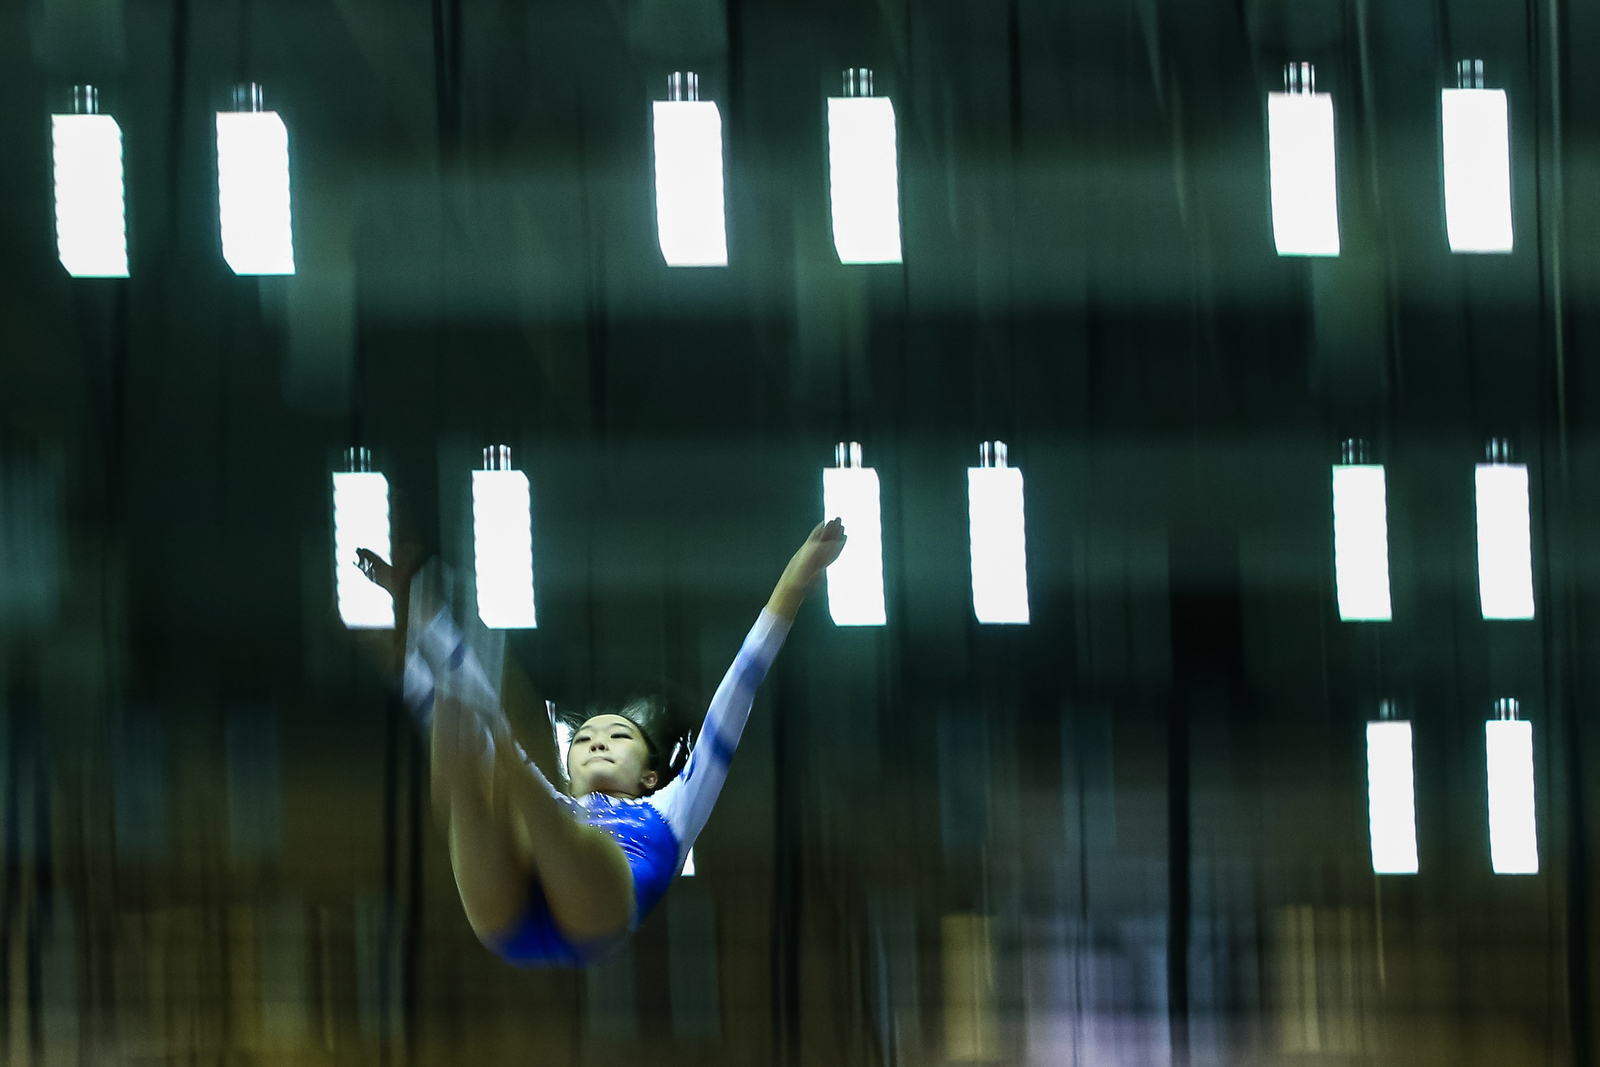 Charmaine Lee of Singapore Chinese Girls' School performs her routine during the National School Games Trampoline Championships at Bishan Sports Hall on March 23, 2016 in Singapore.